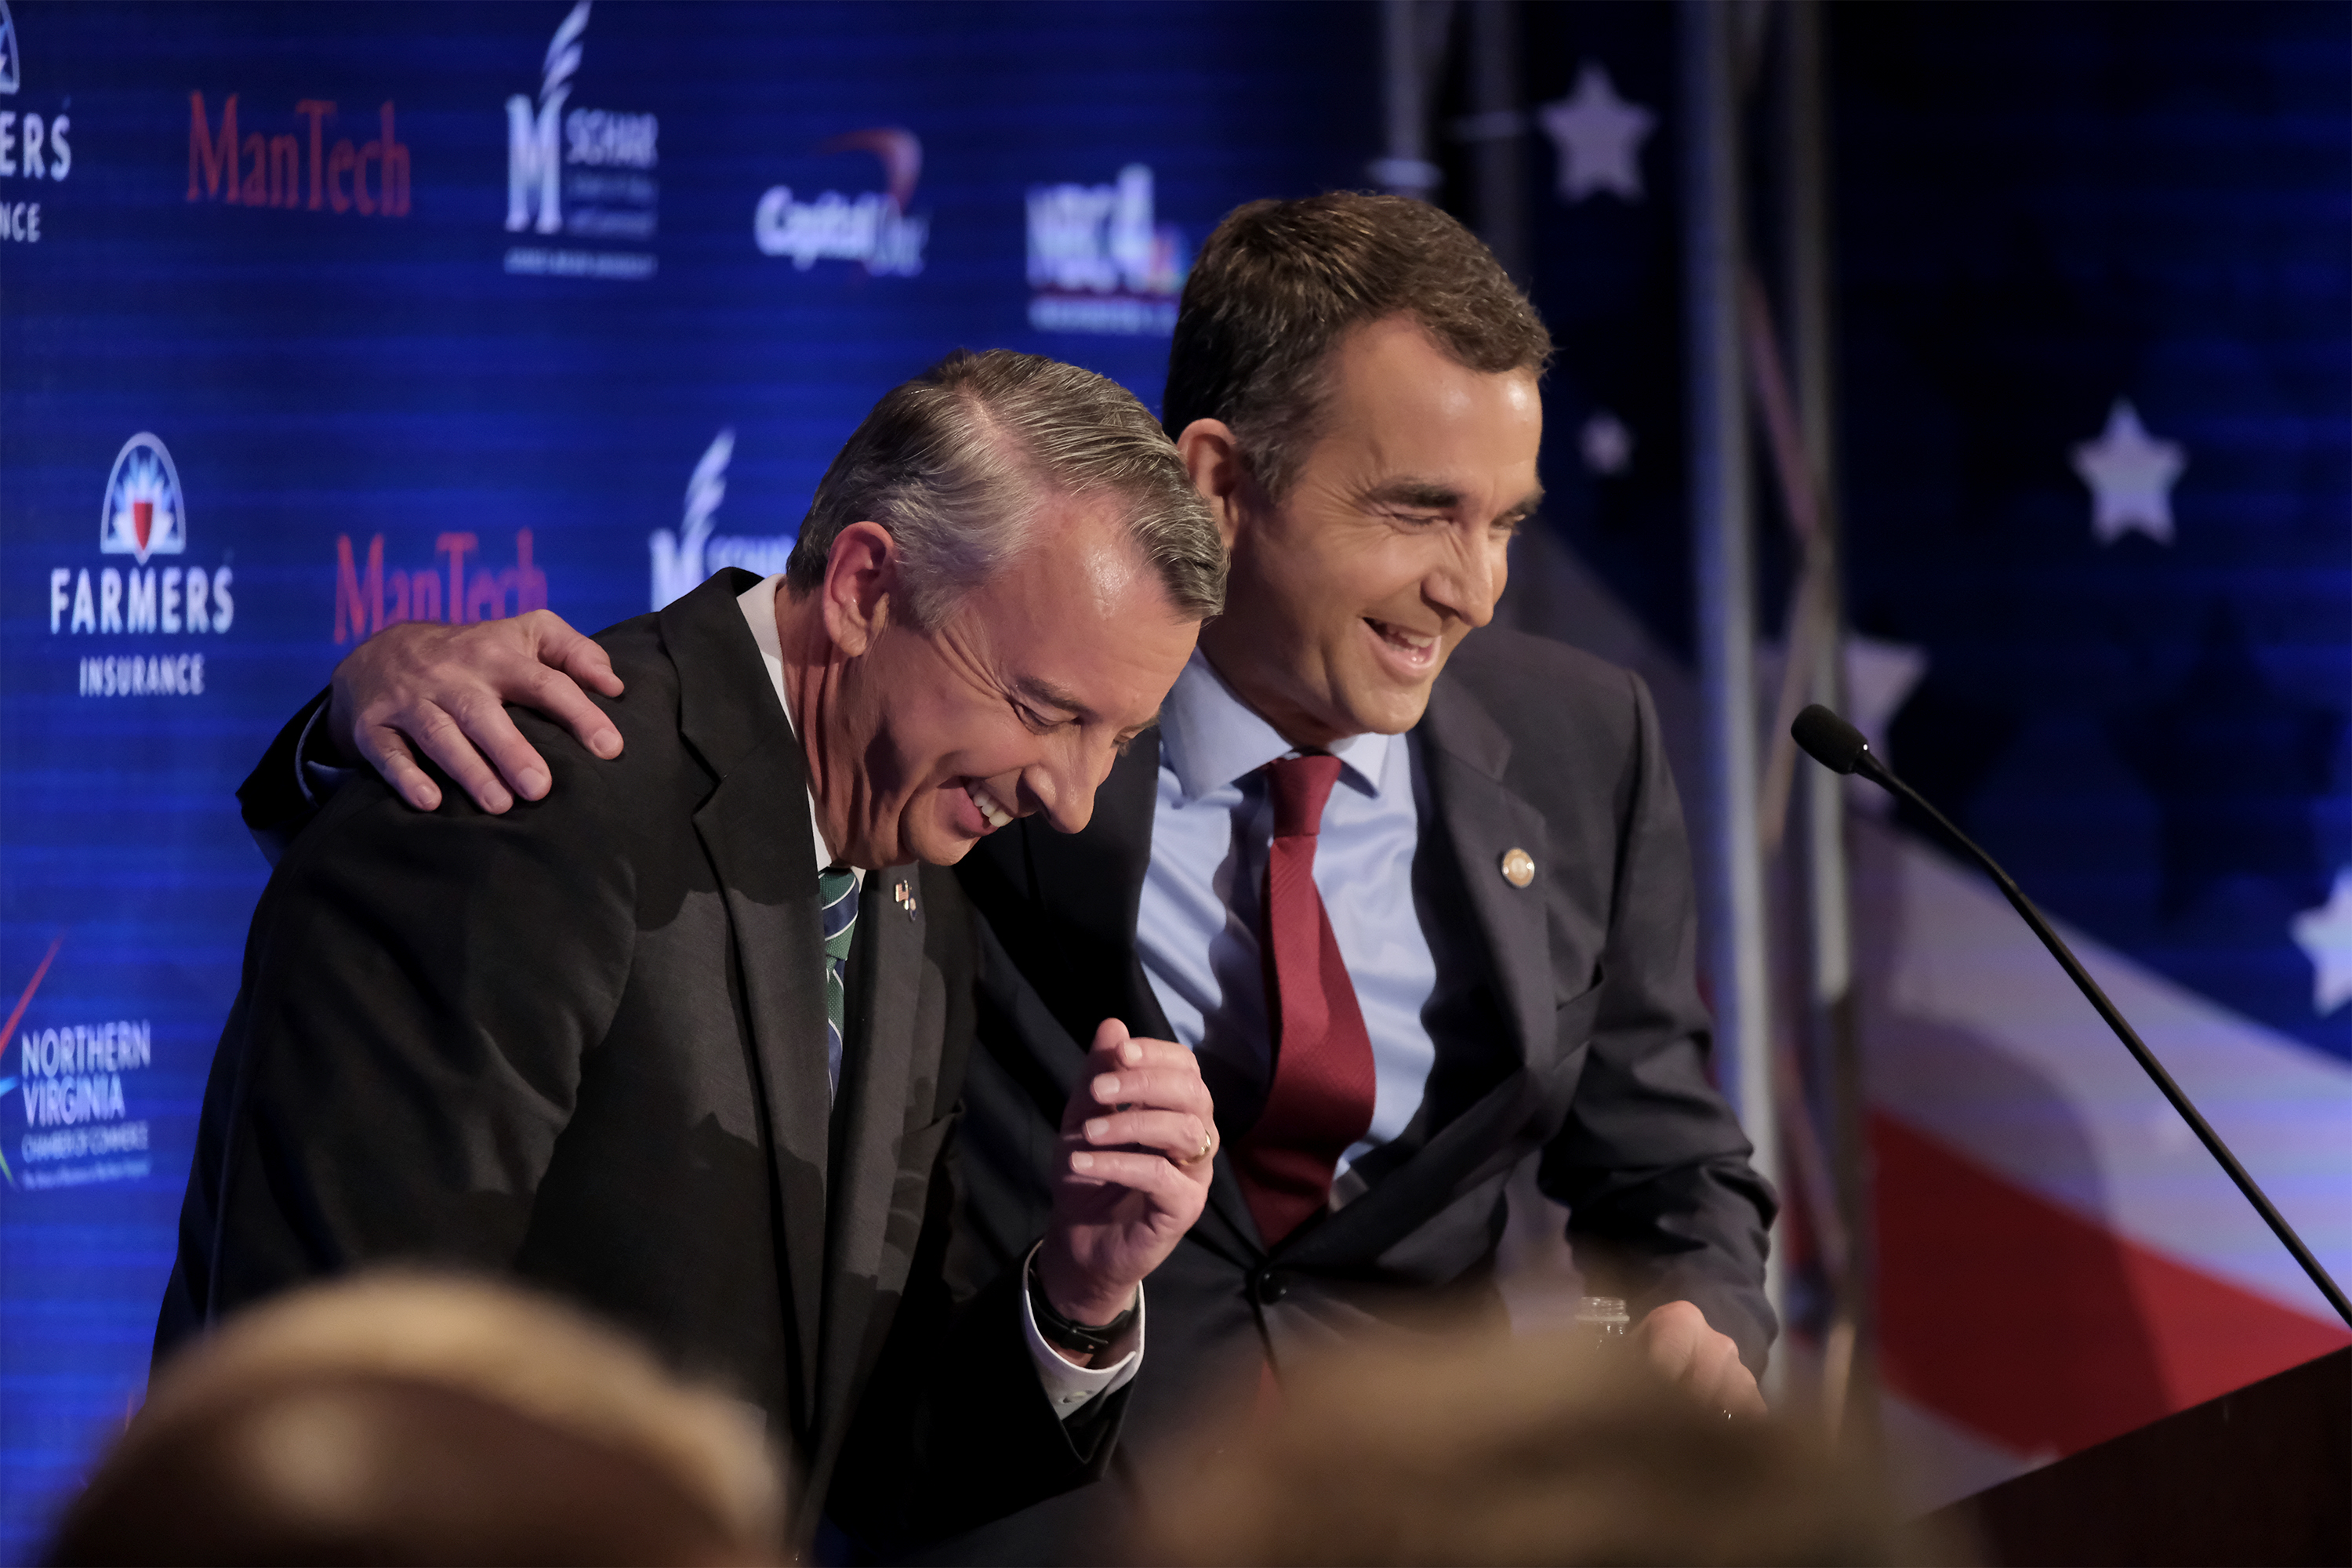 Gillespie and Northam play it safe in second gubernatorial debate